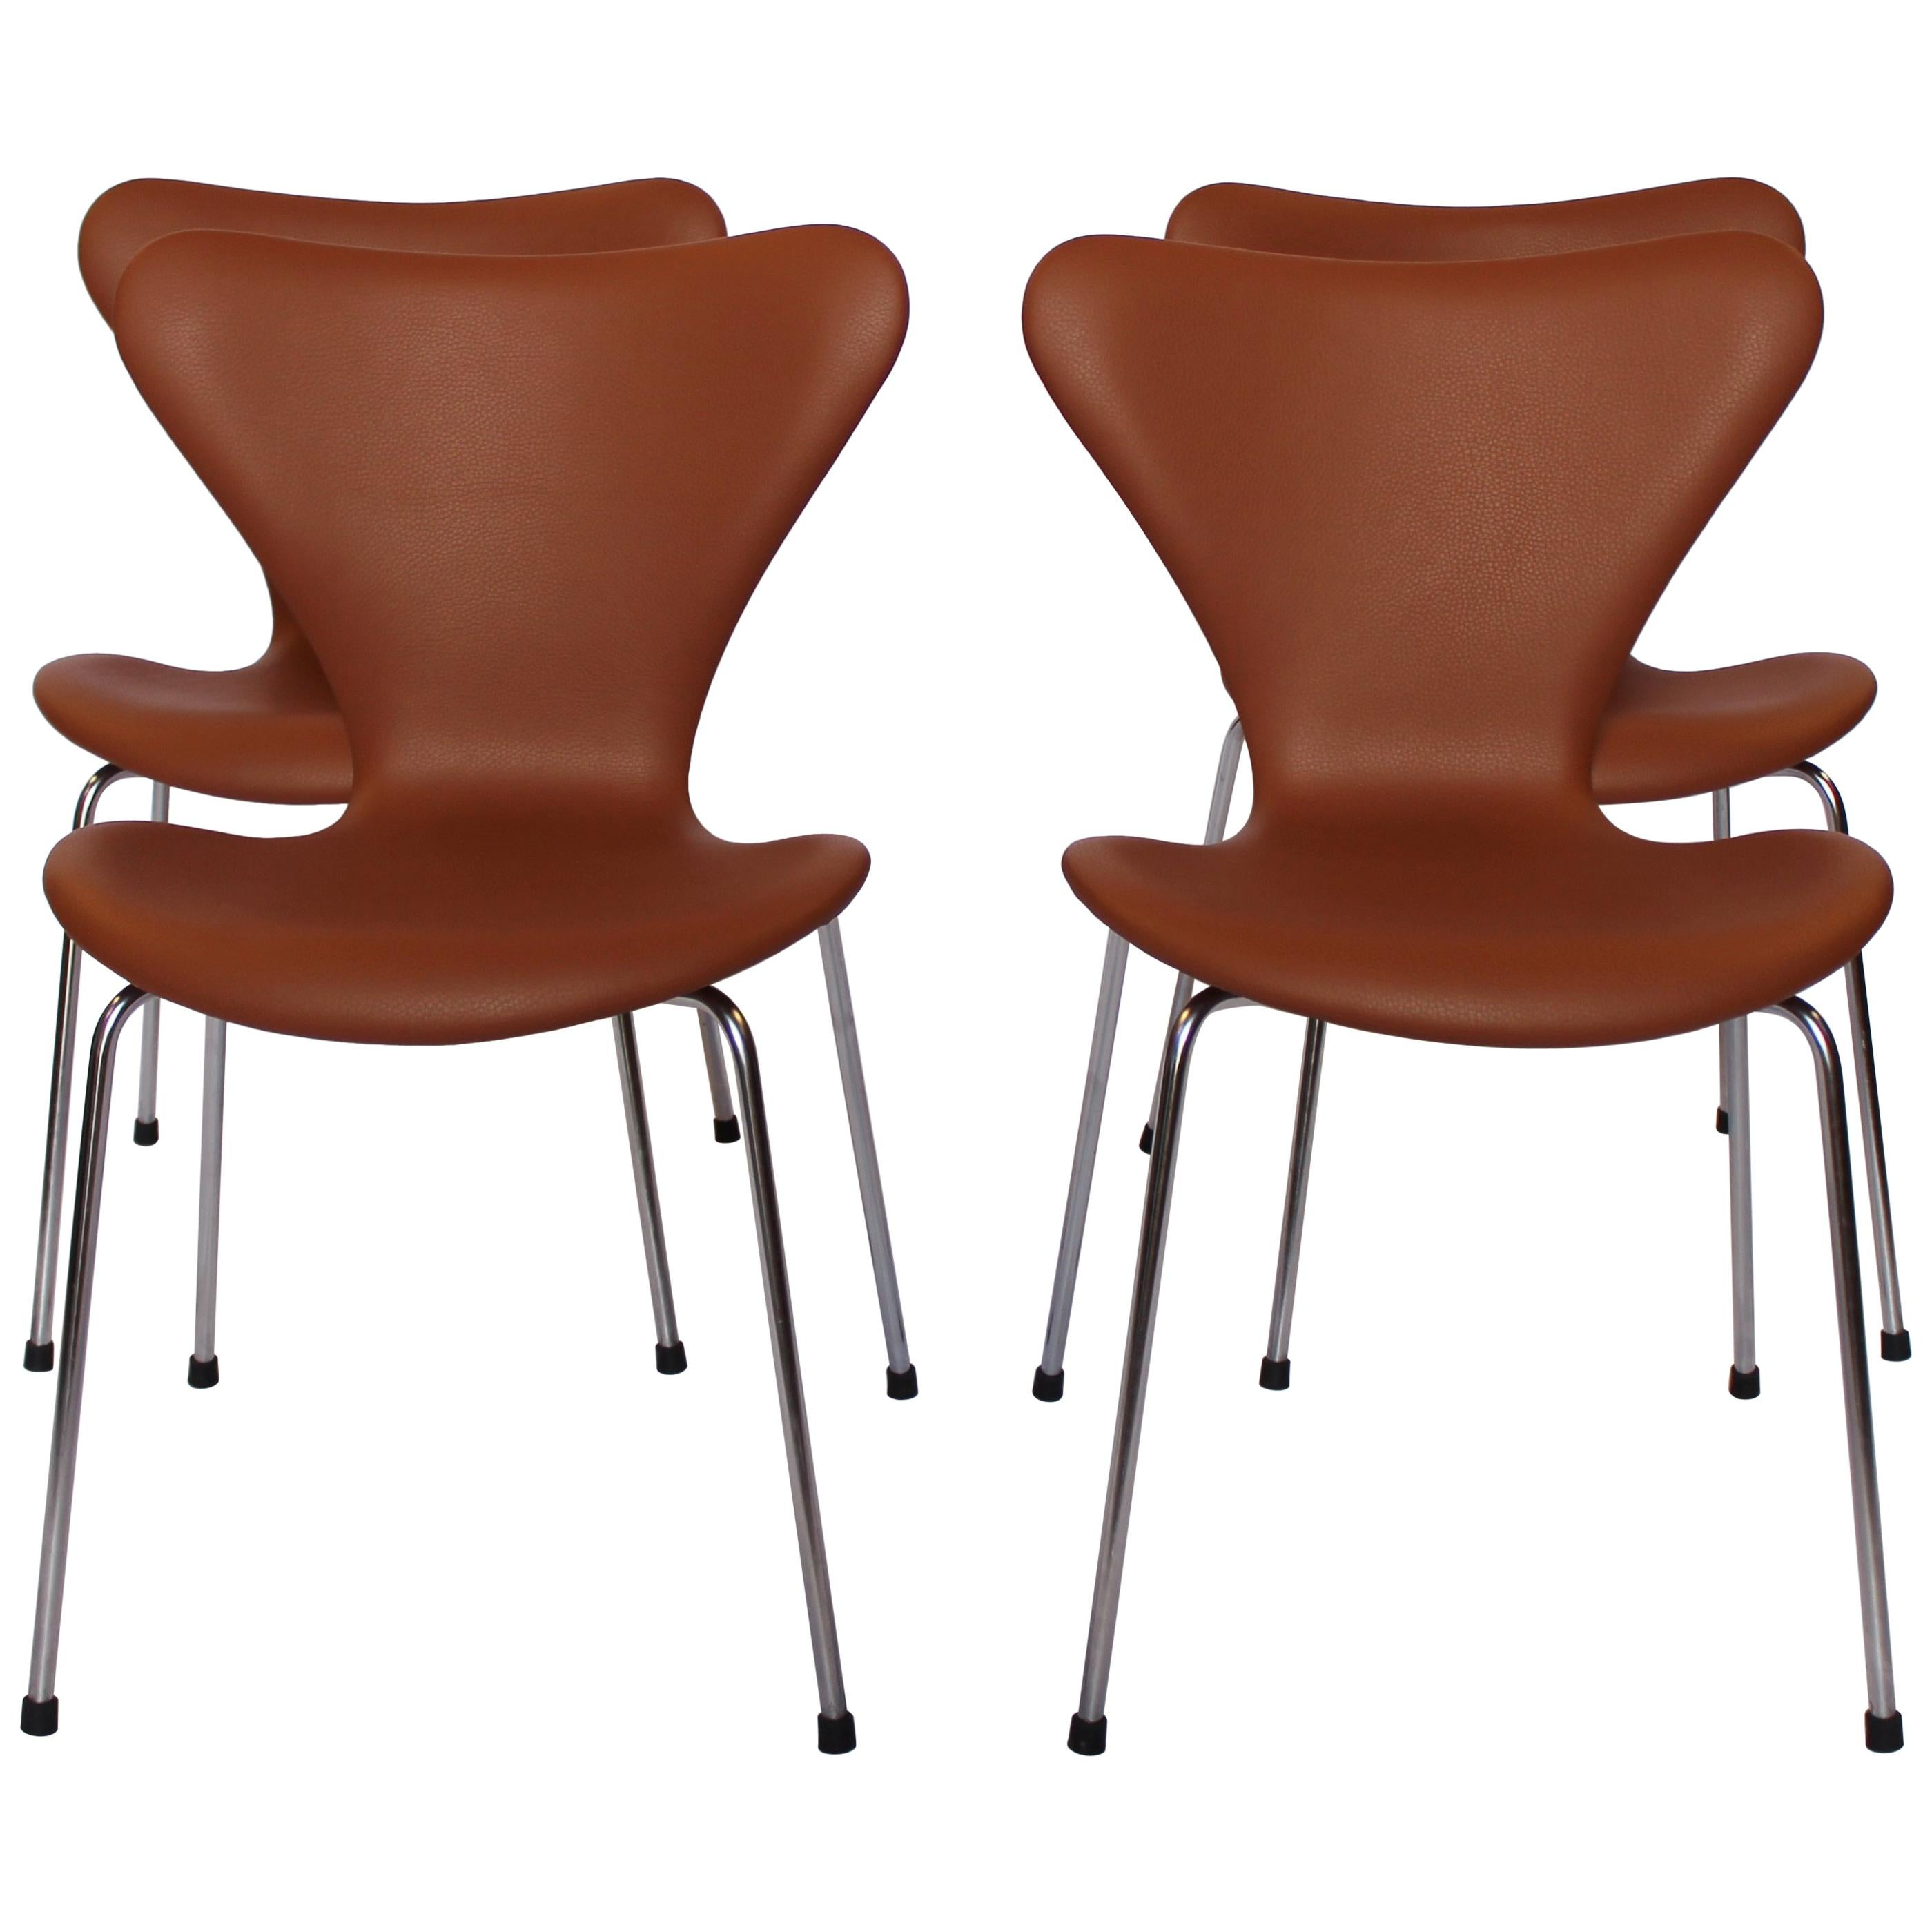 Set of Four Series 7 Chairs, Model 3107 by Arne Jacobsen and Fritz Hansen, 1967